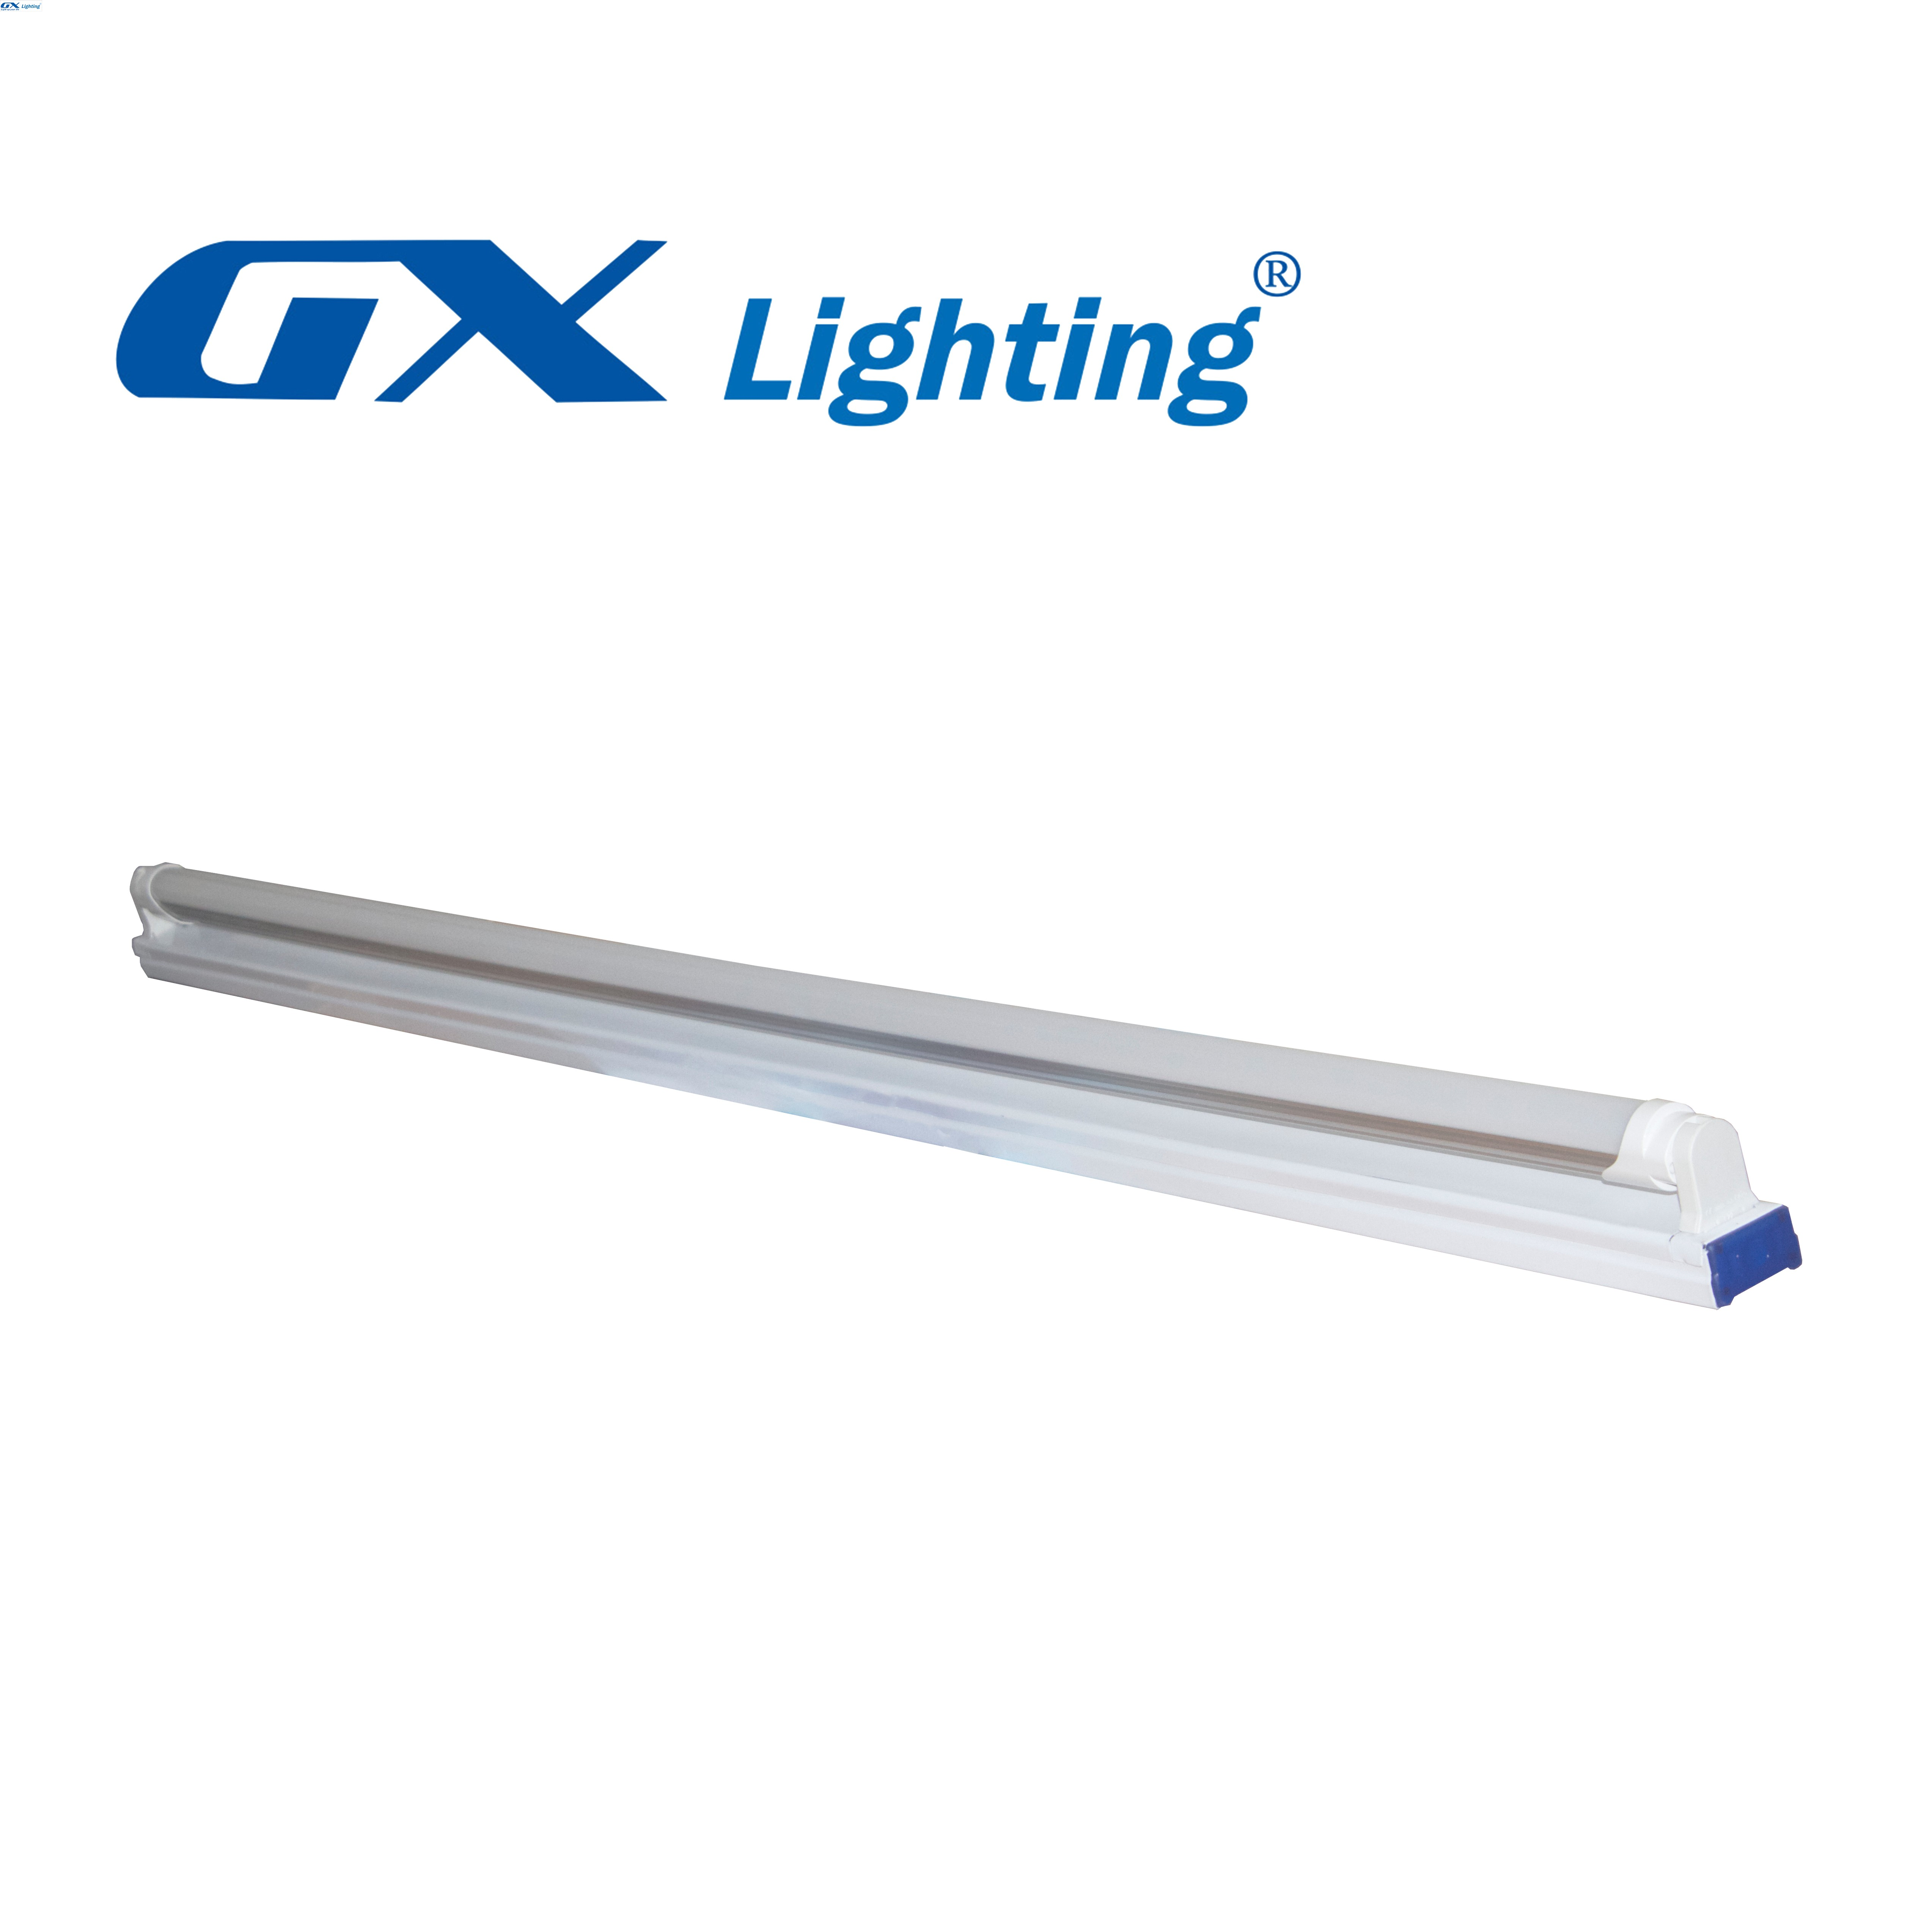 den-led-tuyp-lien-mang-don-gx-lighting-18w-t8-1-2m